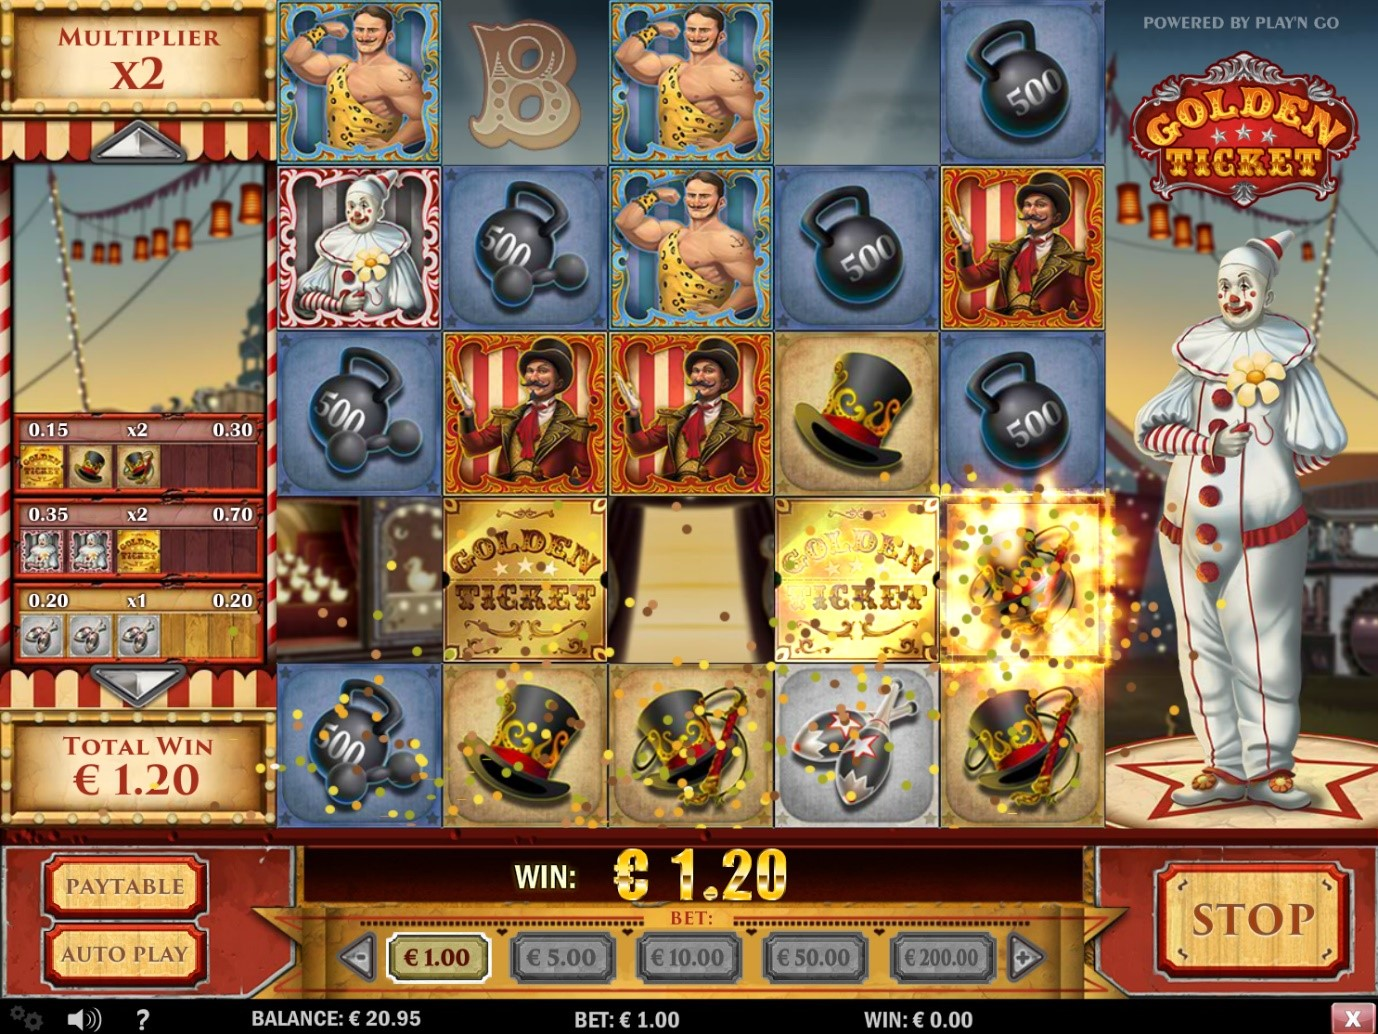 Golden ticket circus slot game